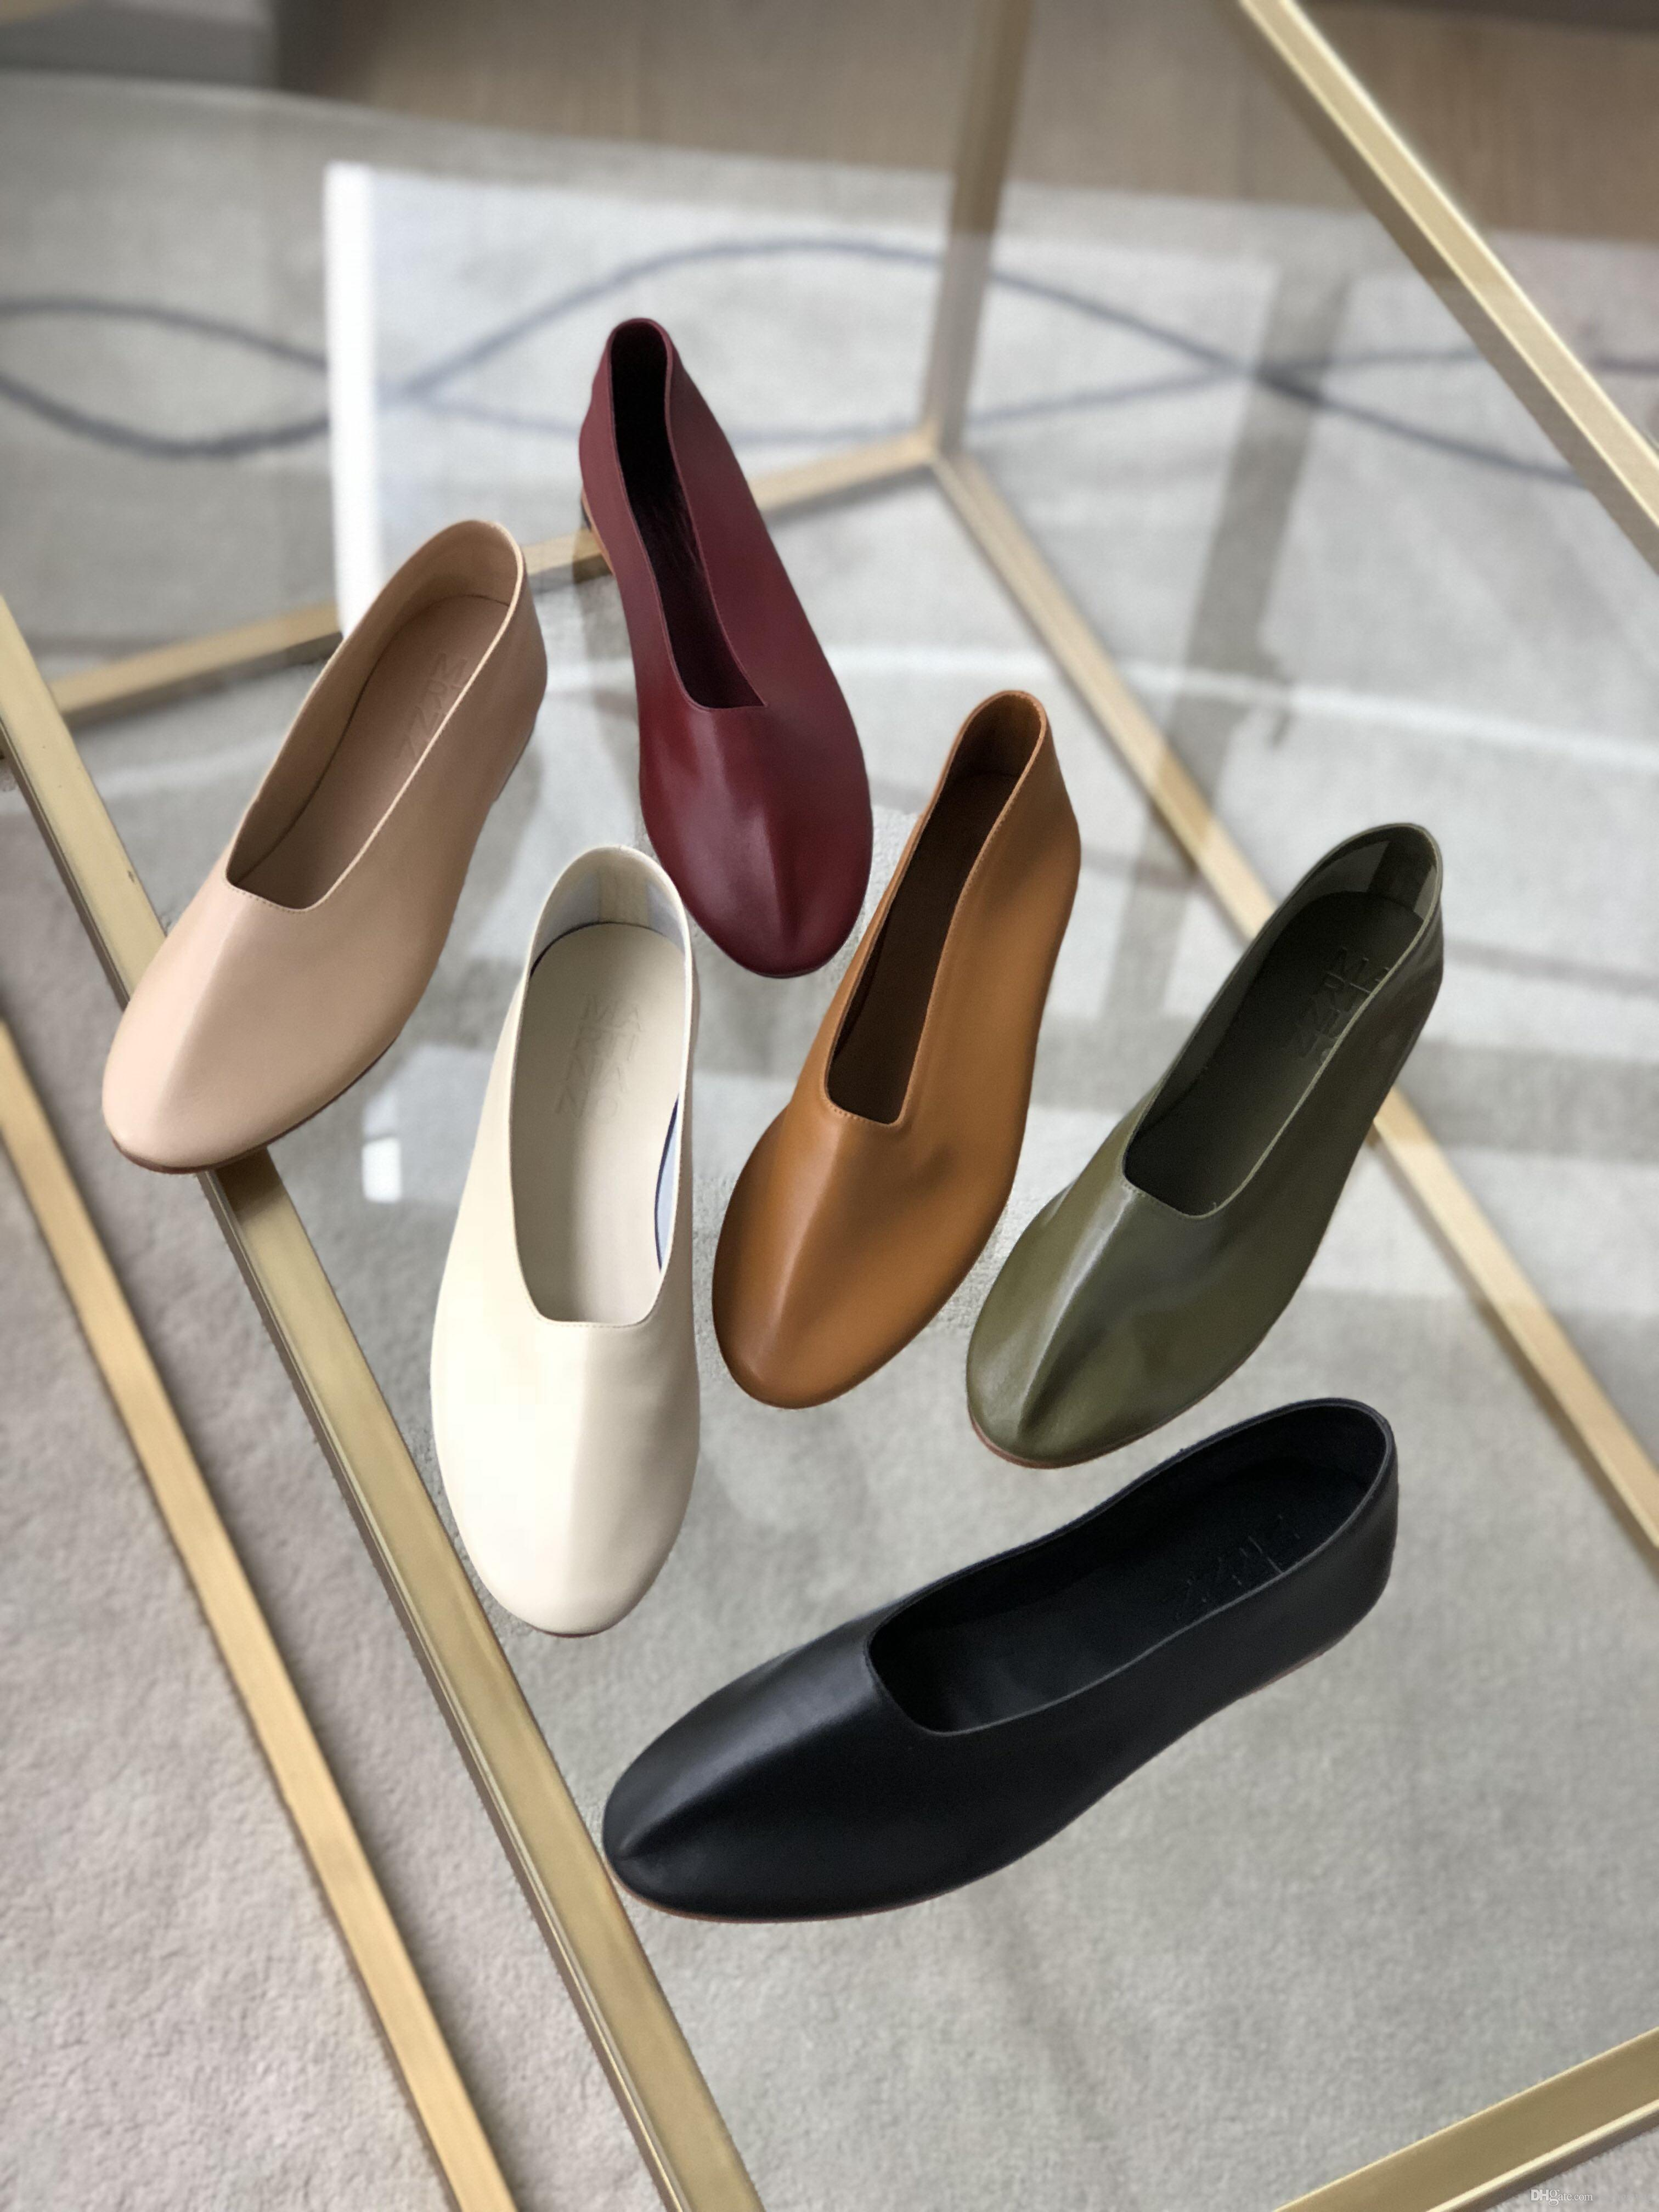 3ab3d92ba3f Acheter Femmes Chaussures Martiniano Mocassins Gant Chaussures Nouvelle  2018 Automne Top Quality Argentine Marque Femmes Tapered Chaton Ballerines  Dolly ...